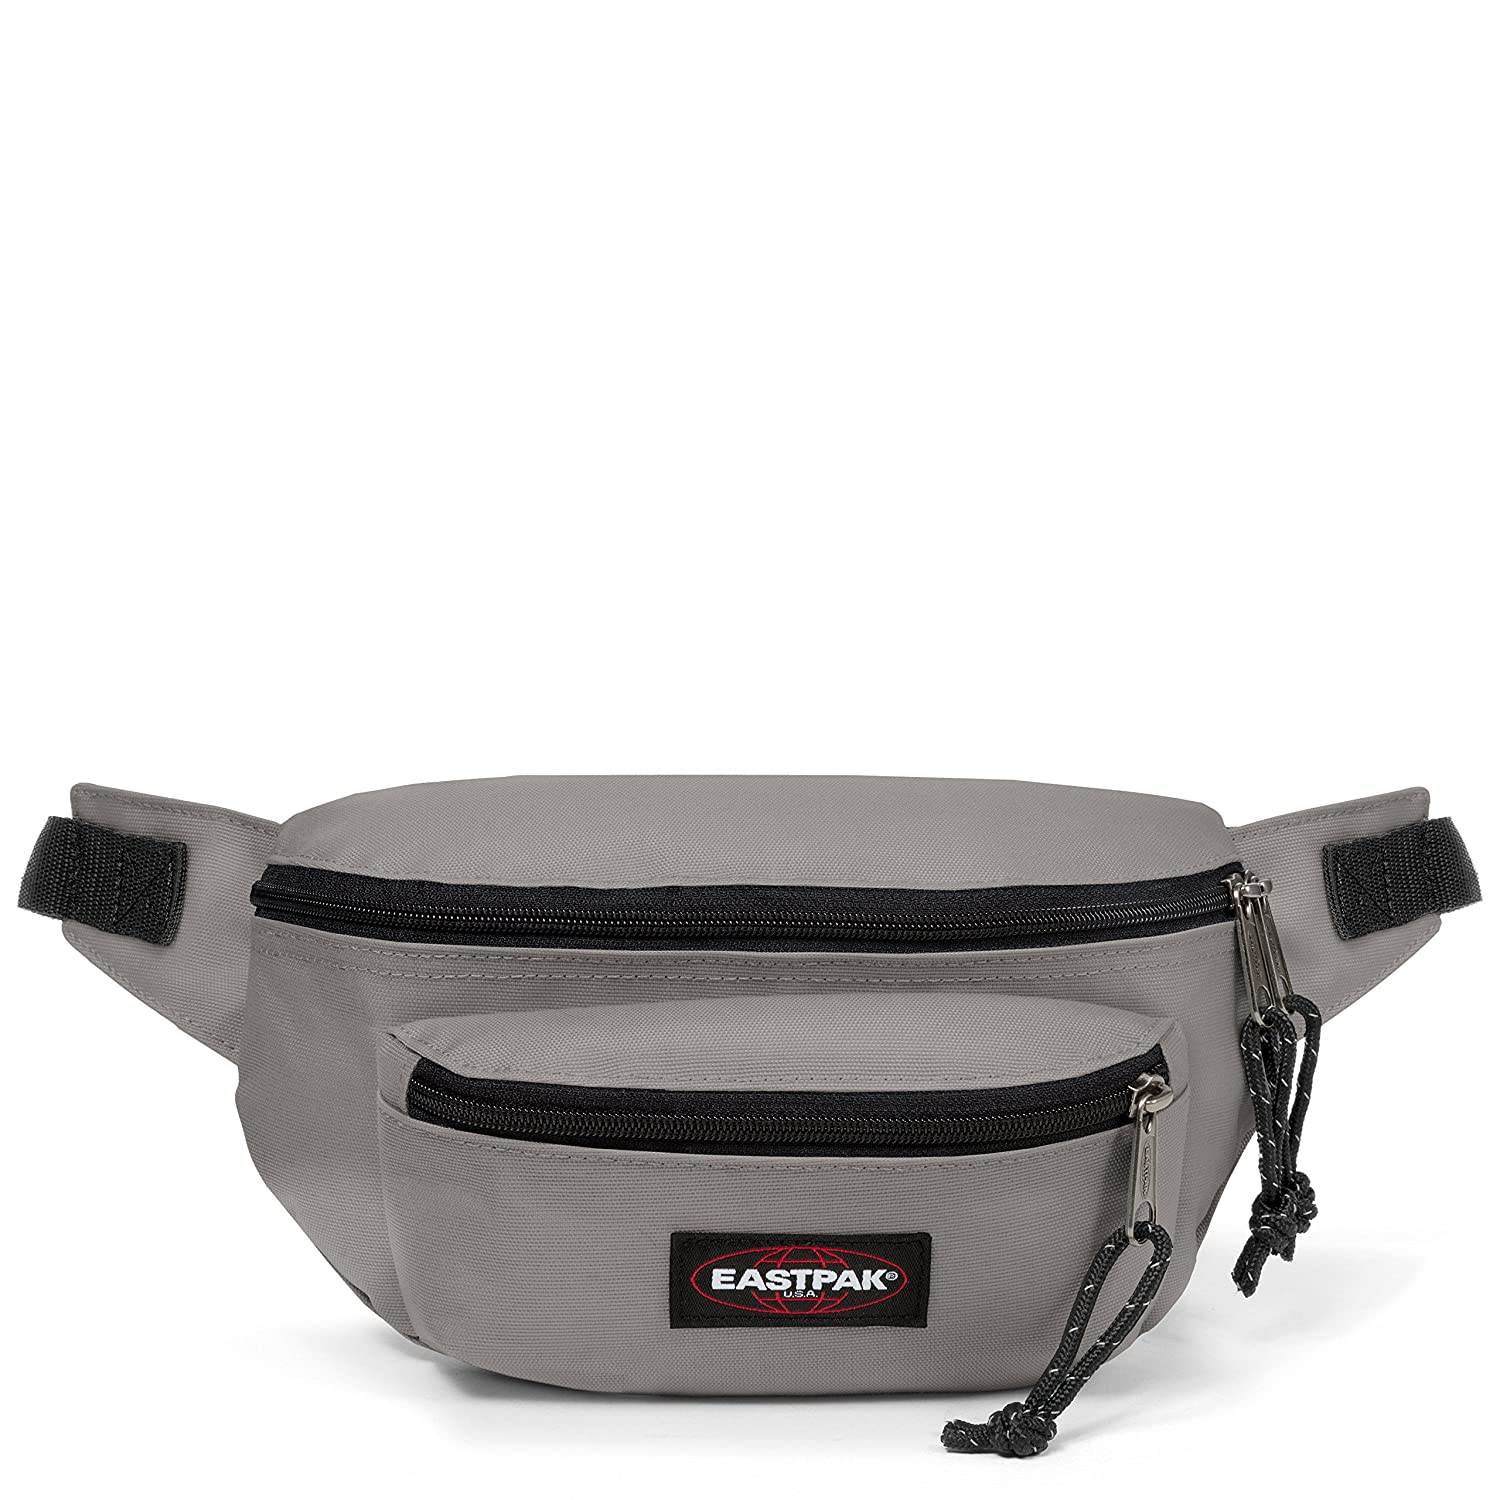 Eastpak Doggy Bag Bolso Bandolera, 27 cm, 3 Liters, Gris (Concrete ...